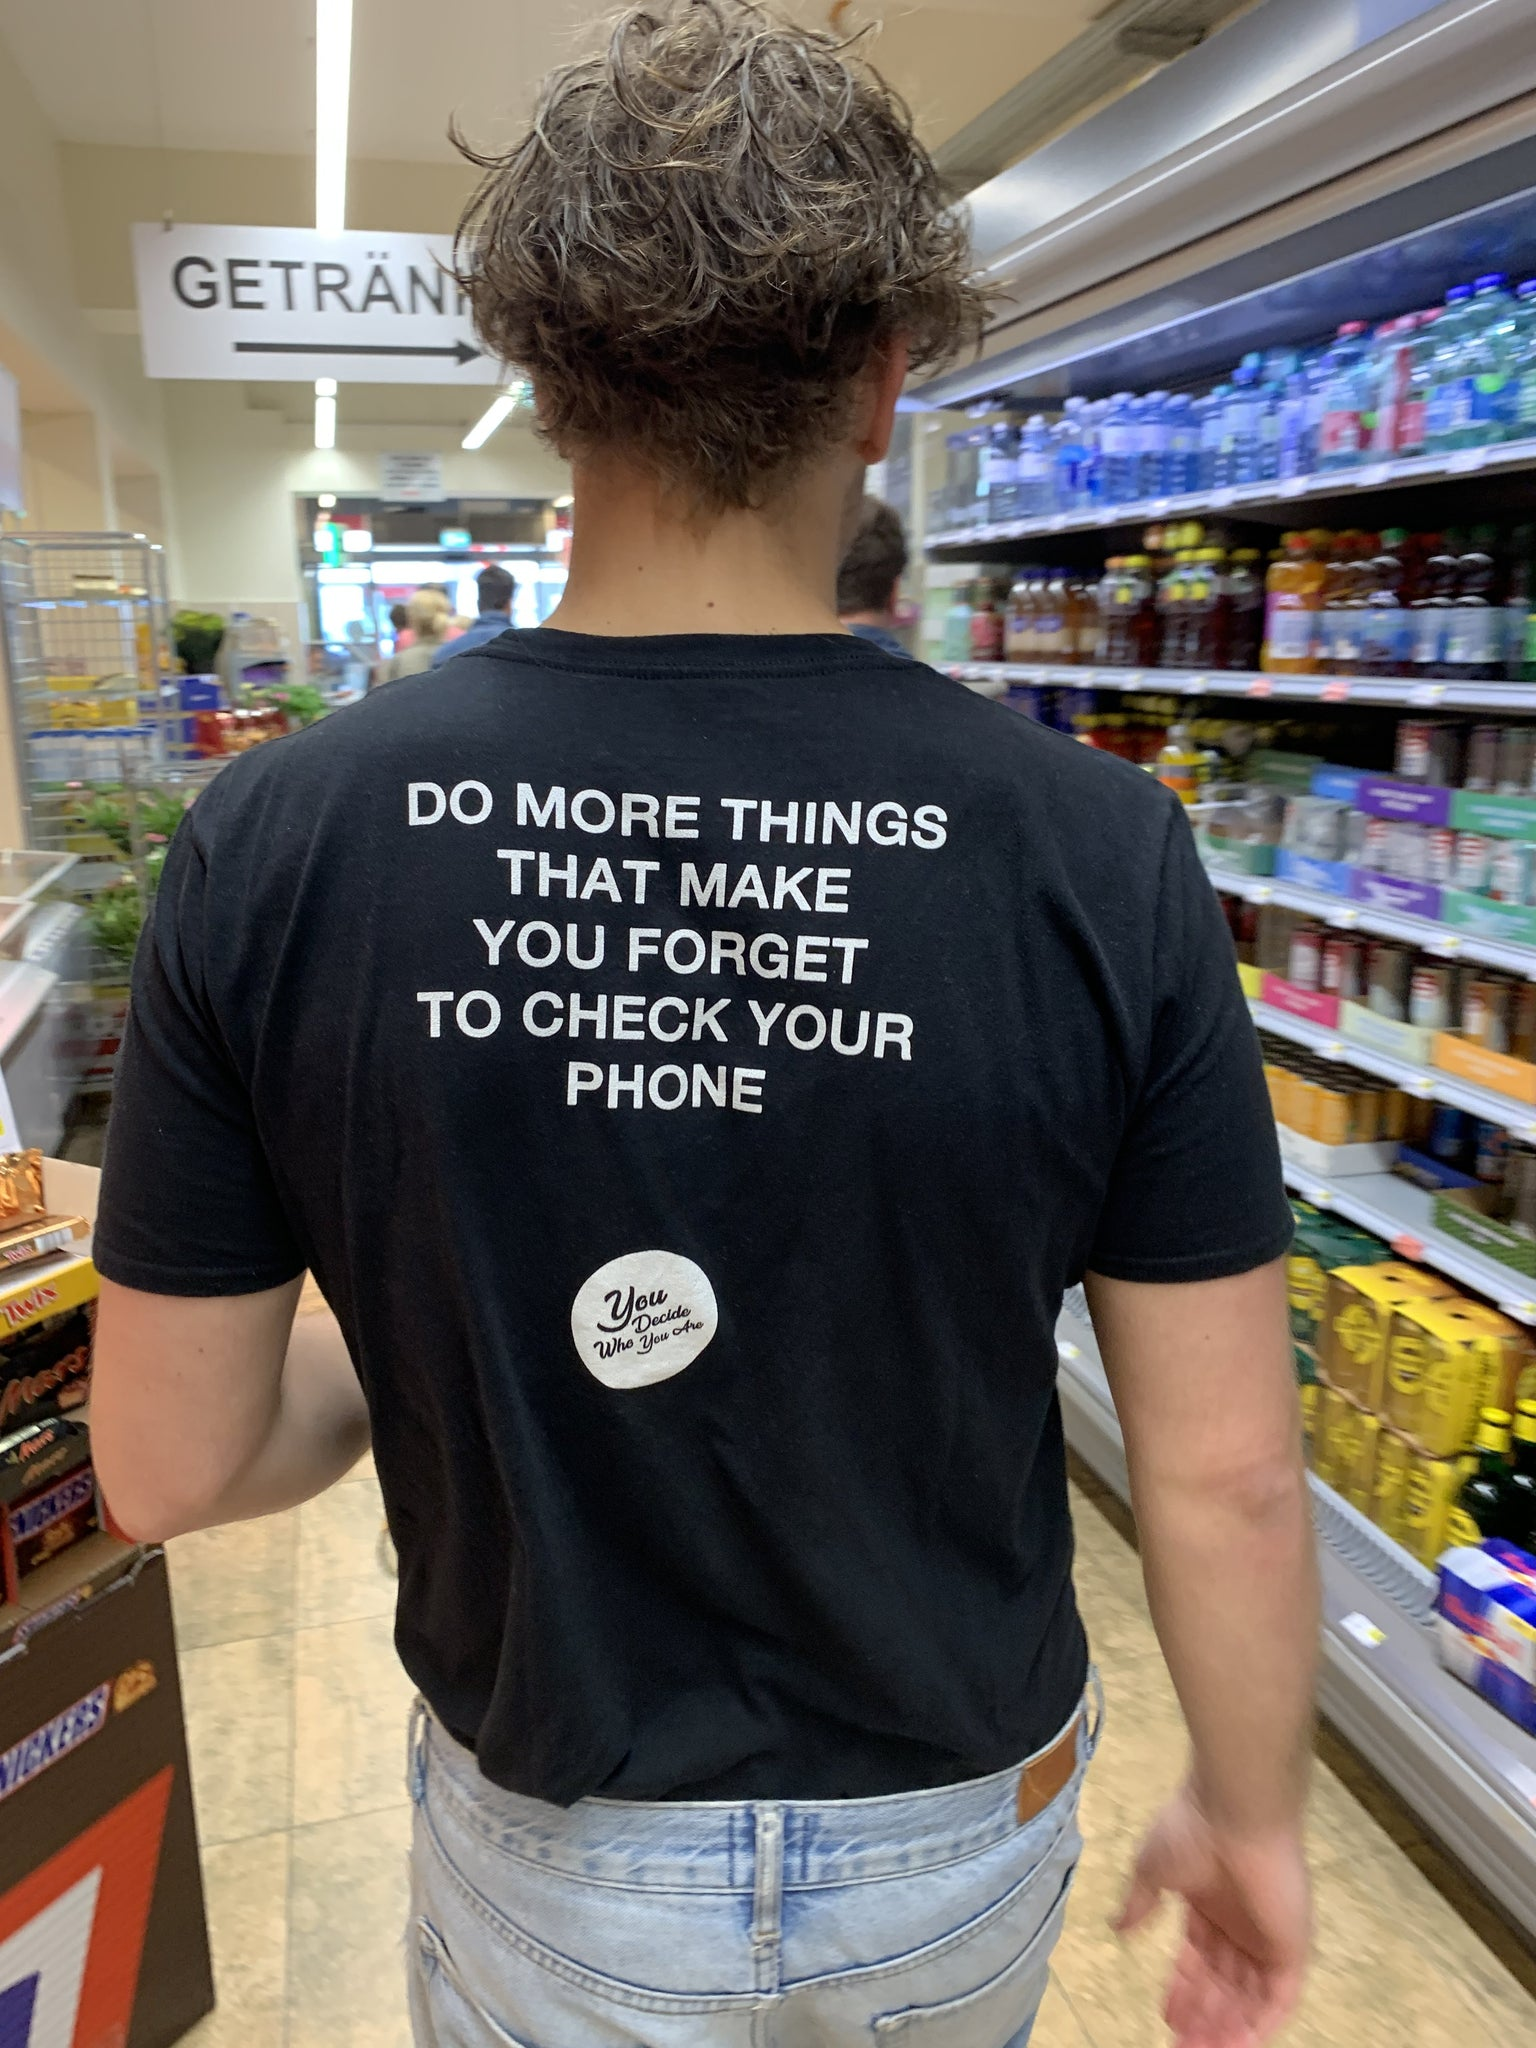 Do more things that make you forget to check your phone T-Shirt - YDWYA – You Decide Who You Are